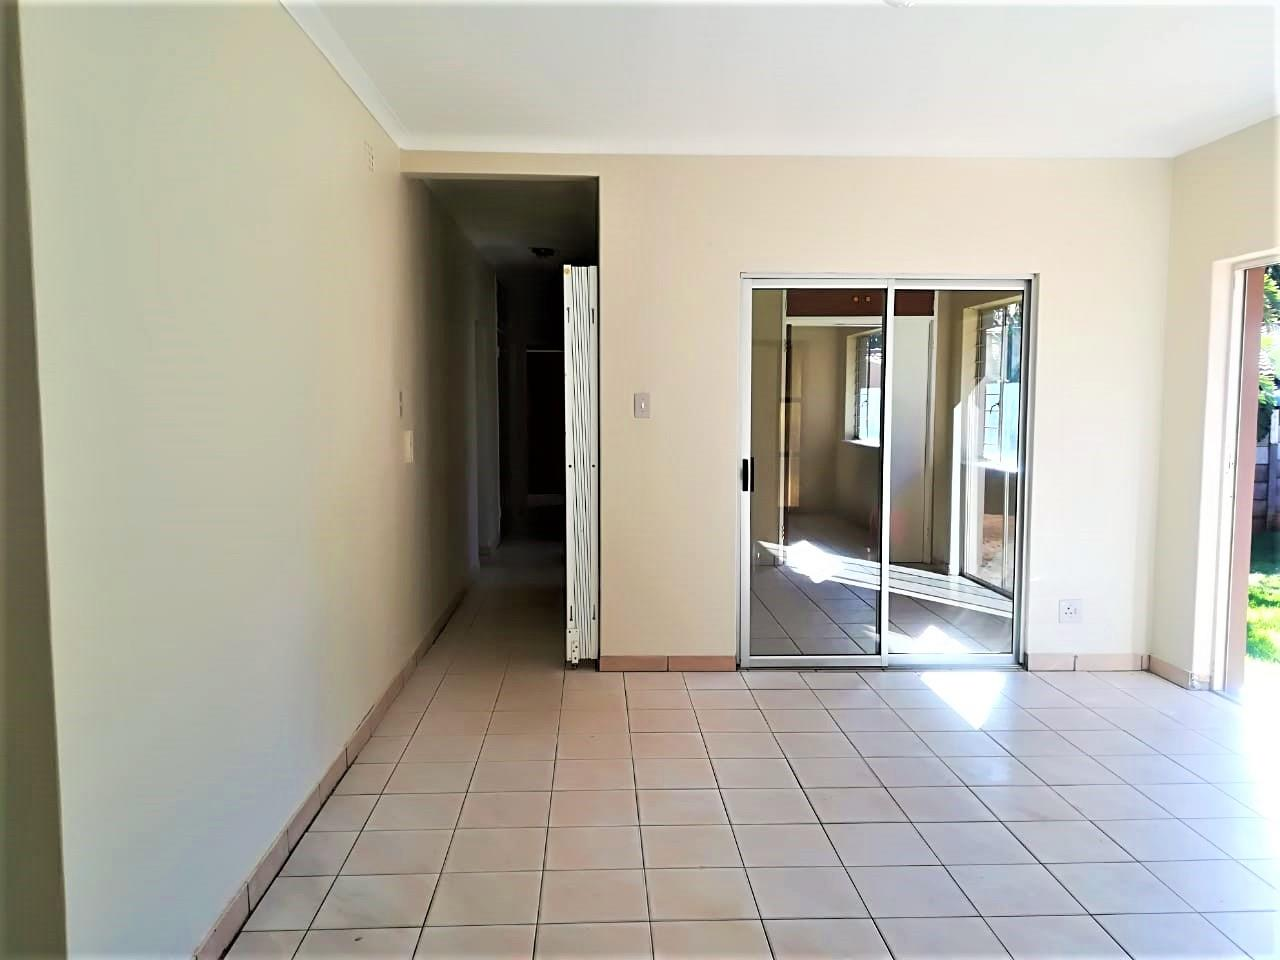 Commercial Property in Mulbarton To Rent